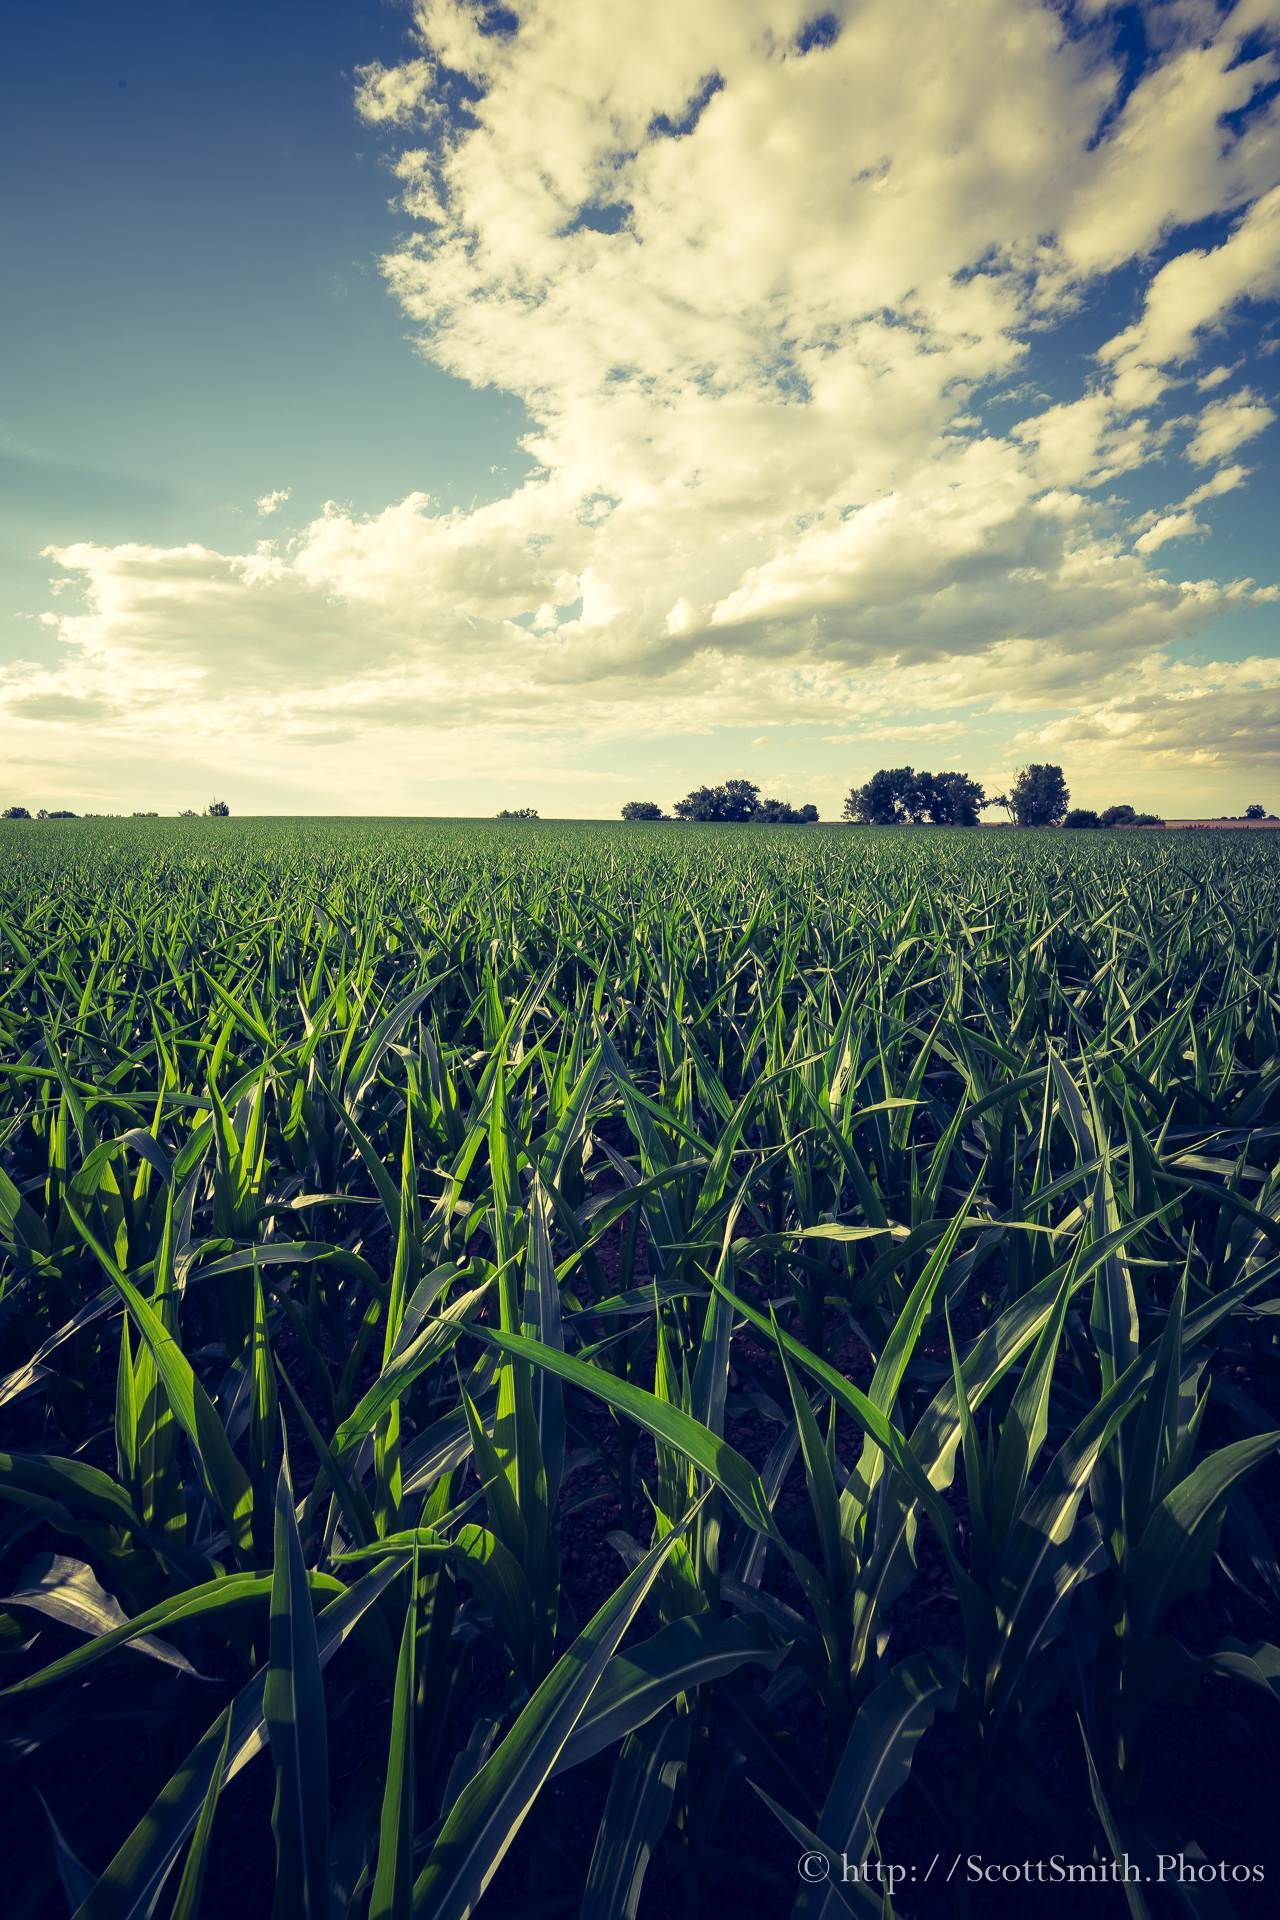 Summer Corn Crop - A large cornfield, about waist-high, growing near Longmont, Colorado off Highway 52. by D Scott Smith